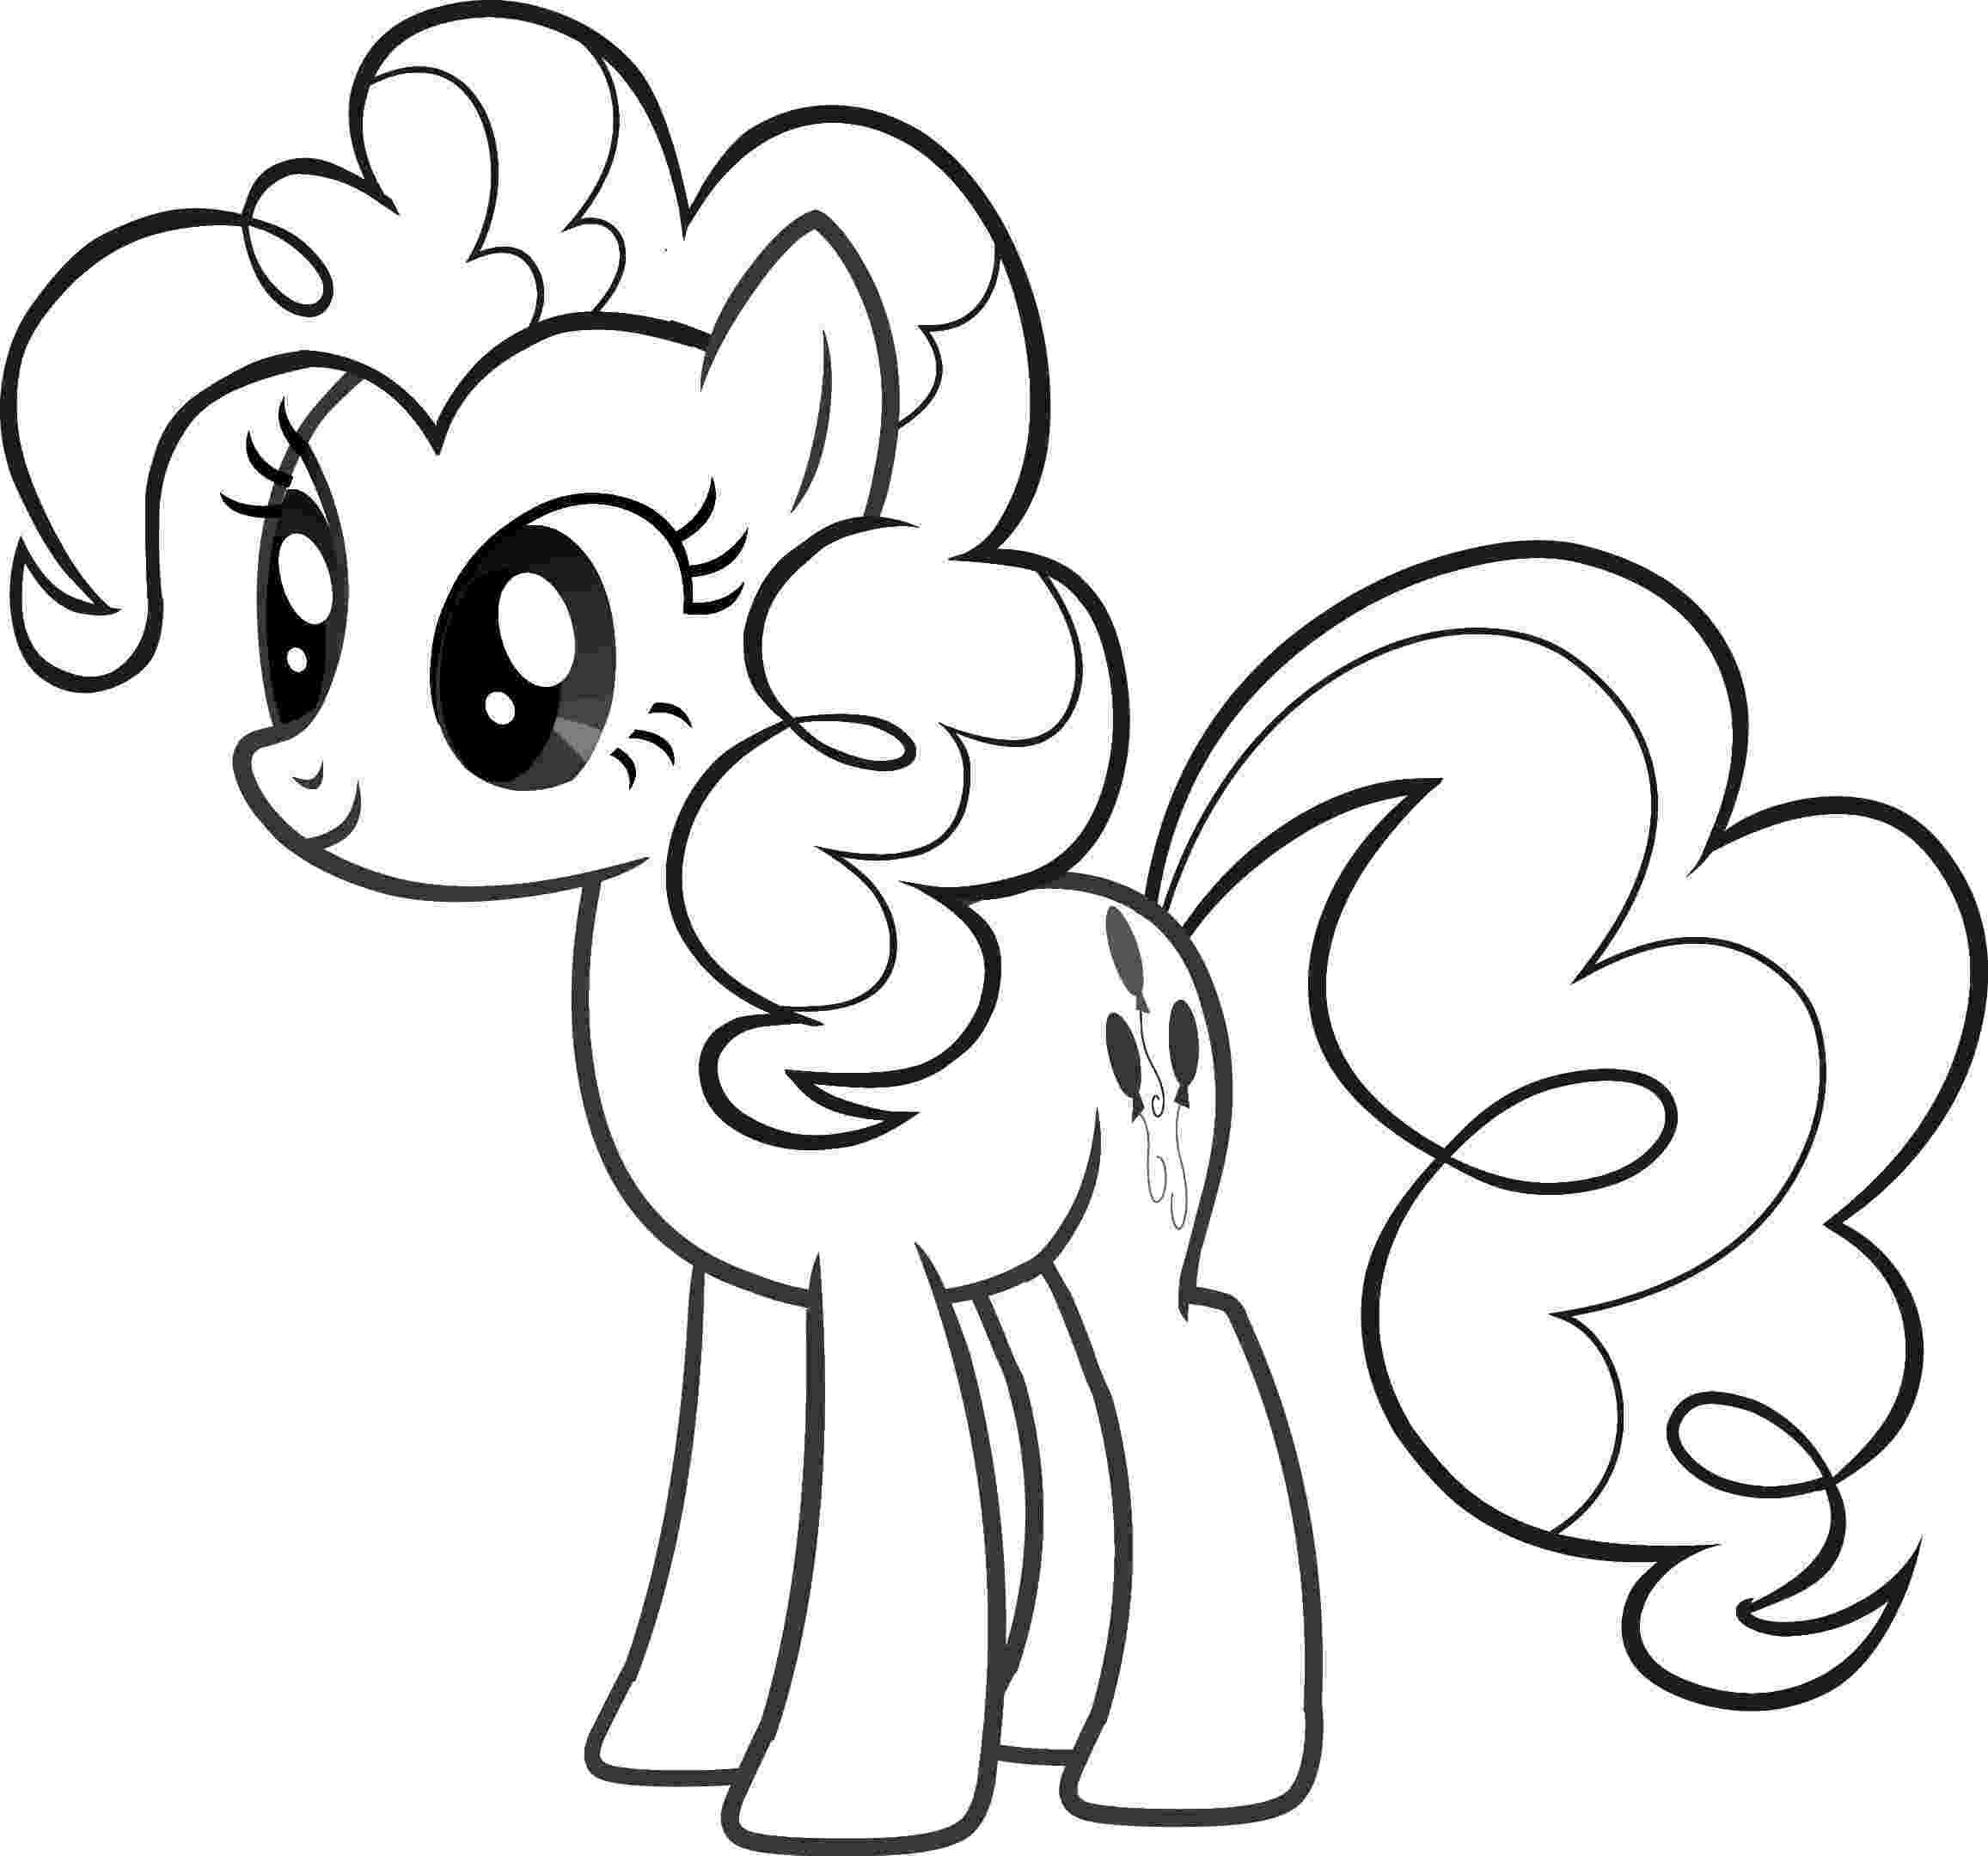 my little pony coloring pages free printable free printable my little pony coloring pages for kids my pony coloring little pages my free printable